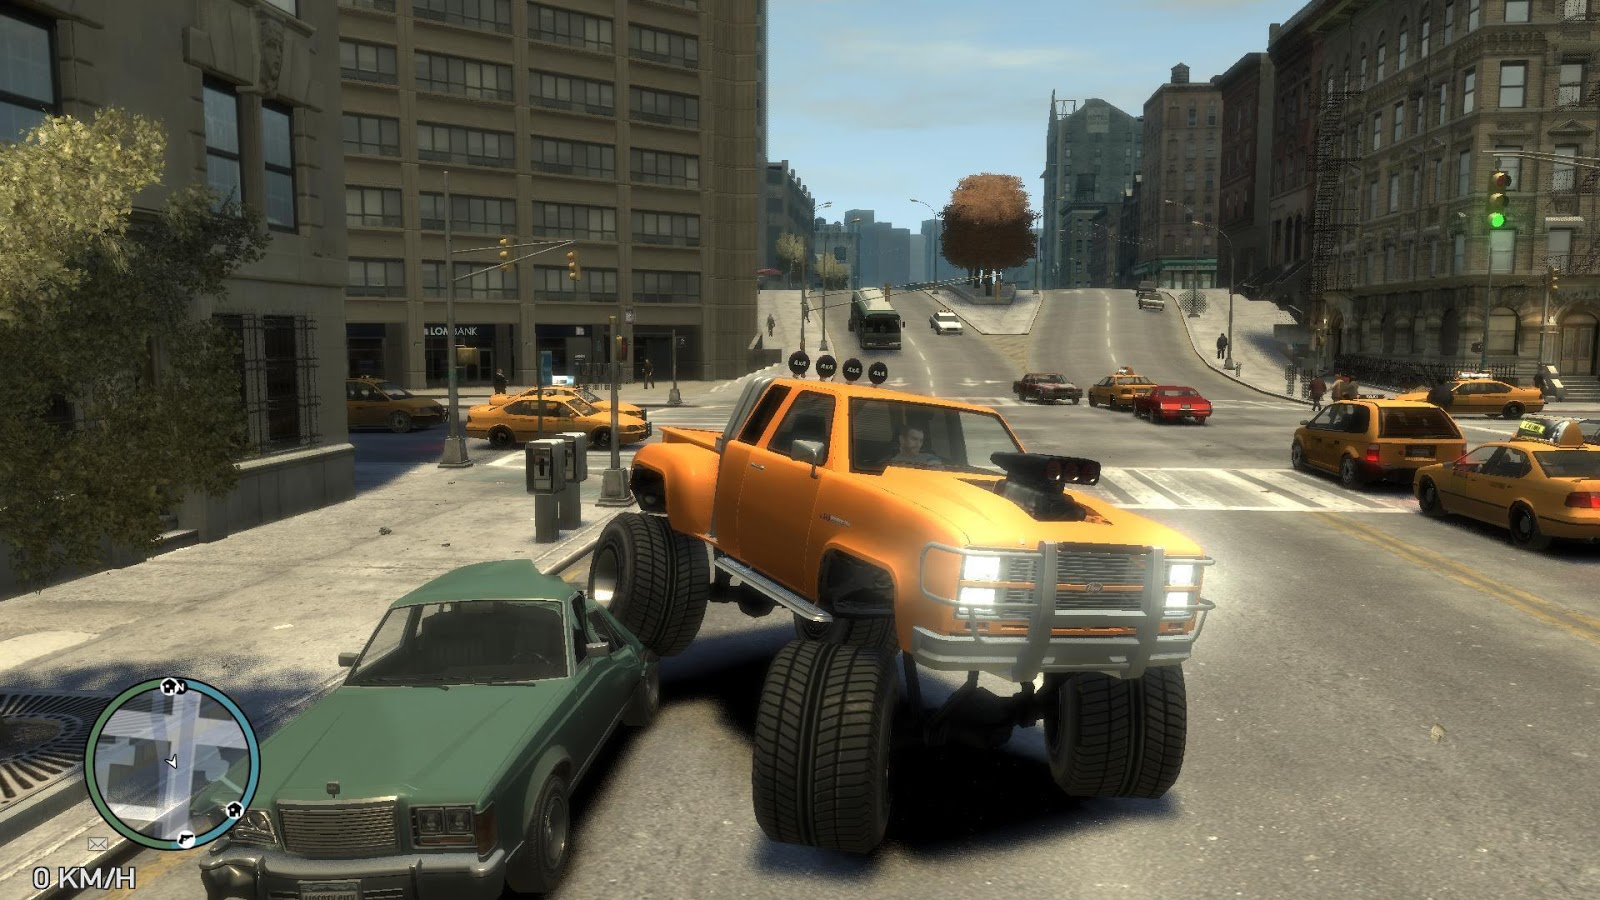 Download gta iv + multiplayer (pc) free and easy youtube.